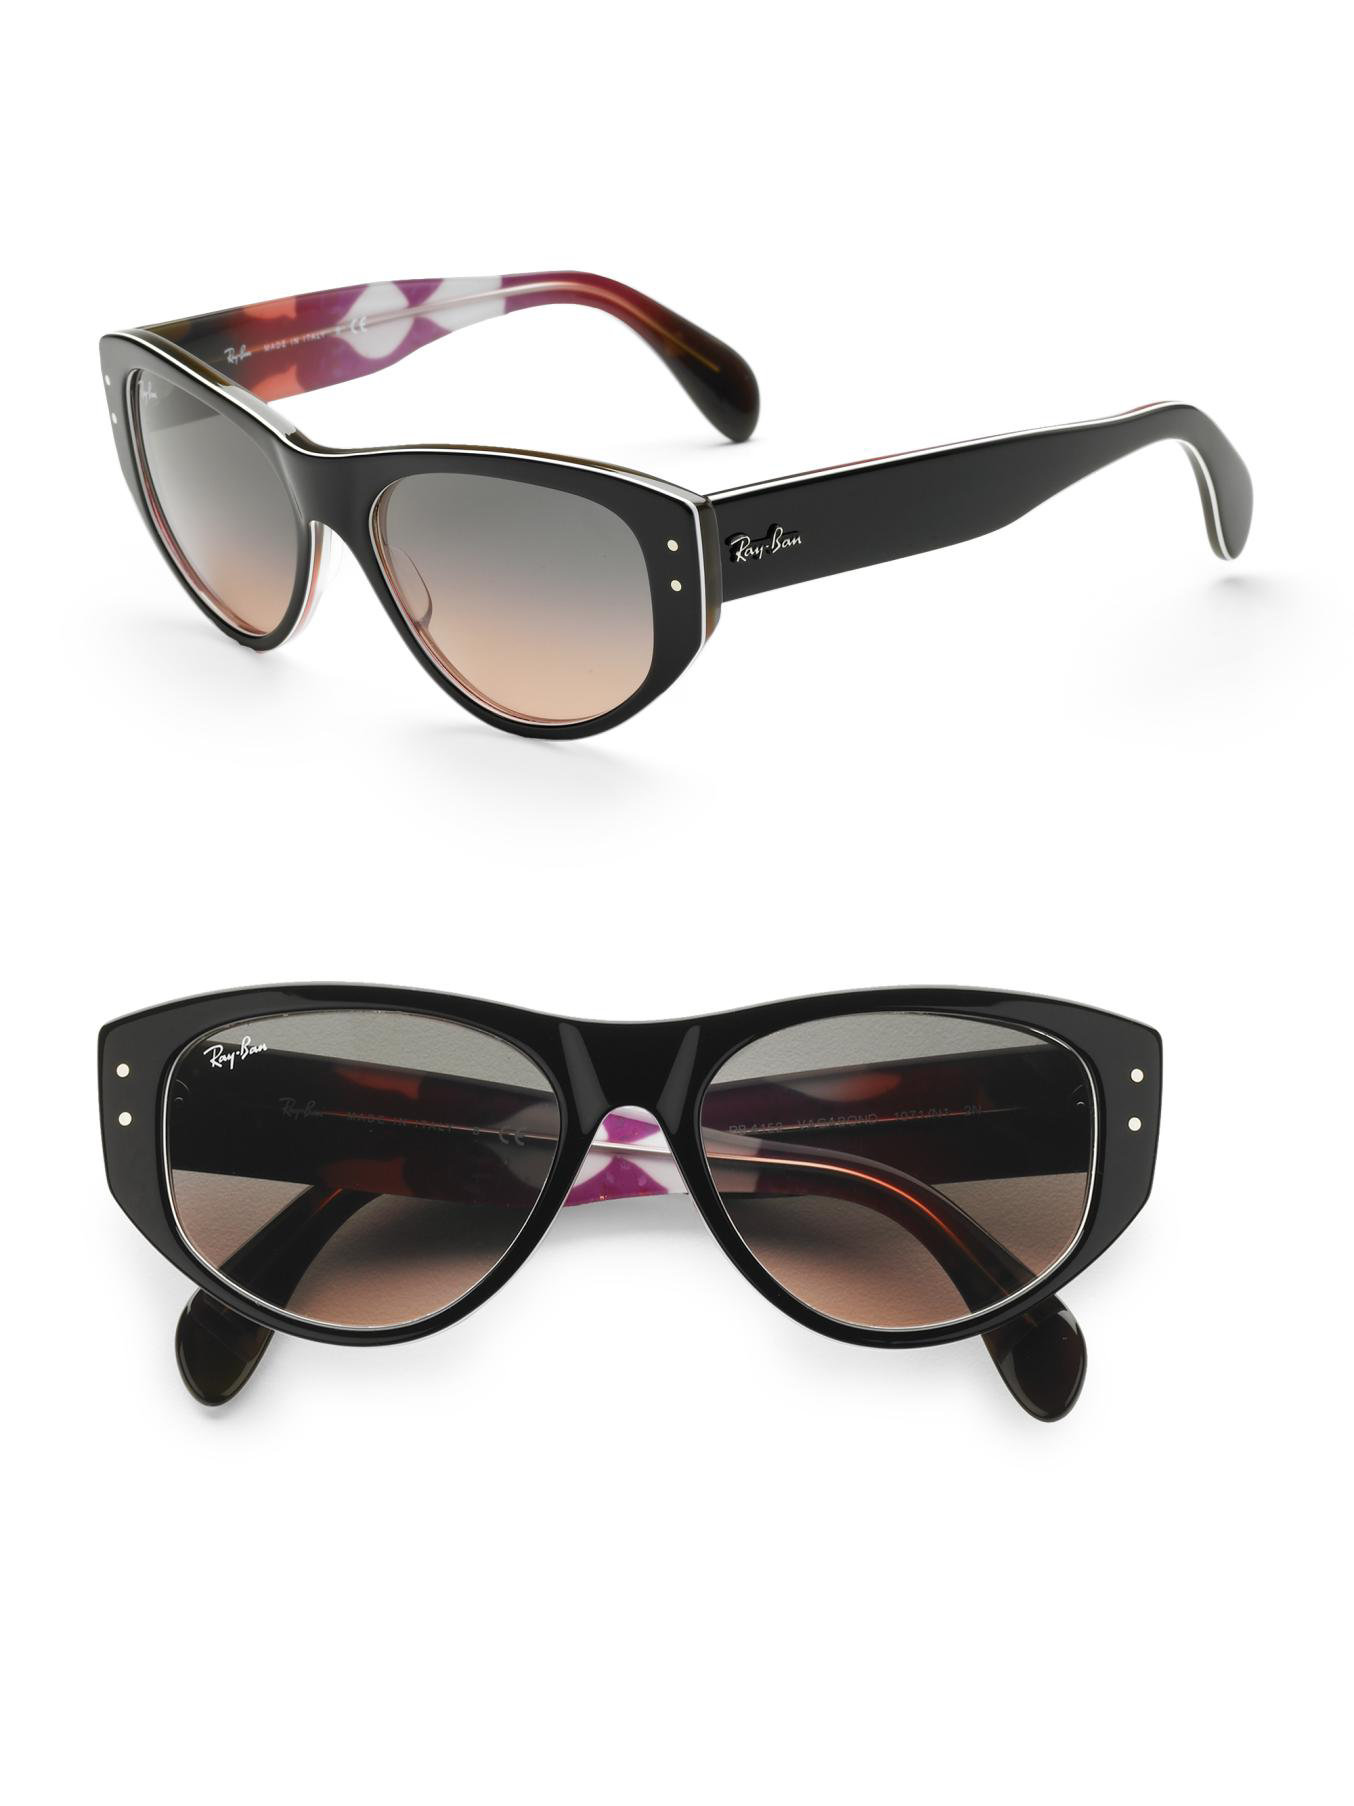 4370c52055 Ray Ban Rb 3127 « One More Soul